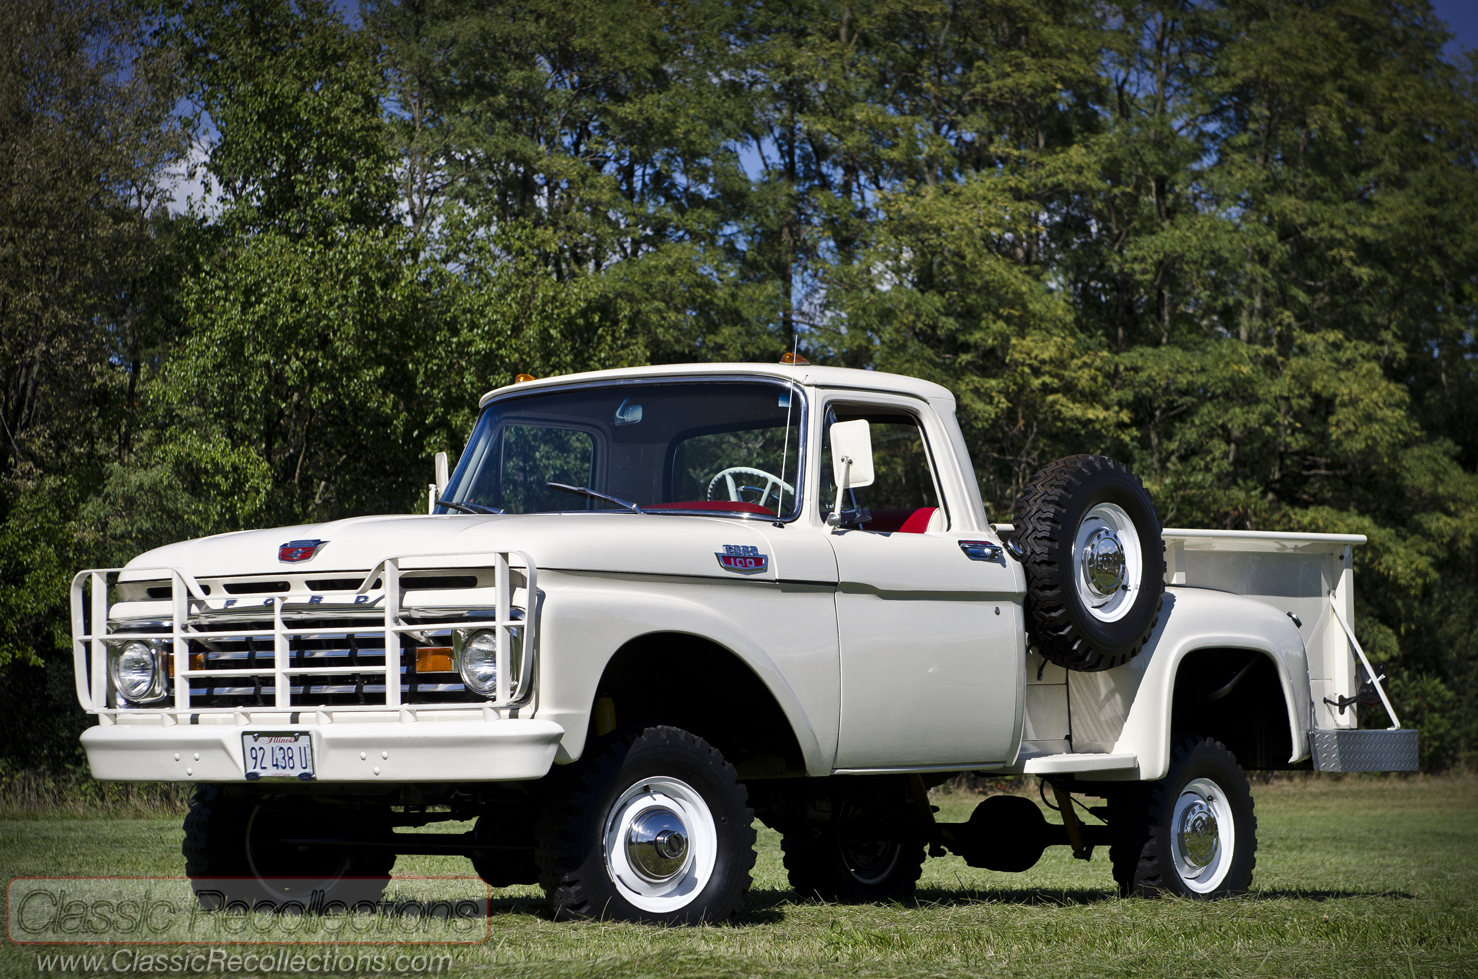 FEATURE: 1963 Ford F100 4×4 – Classic Recollections